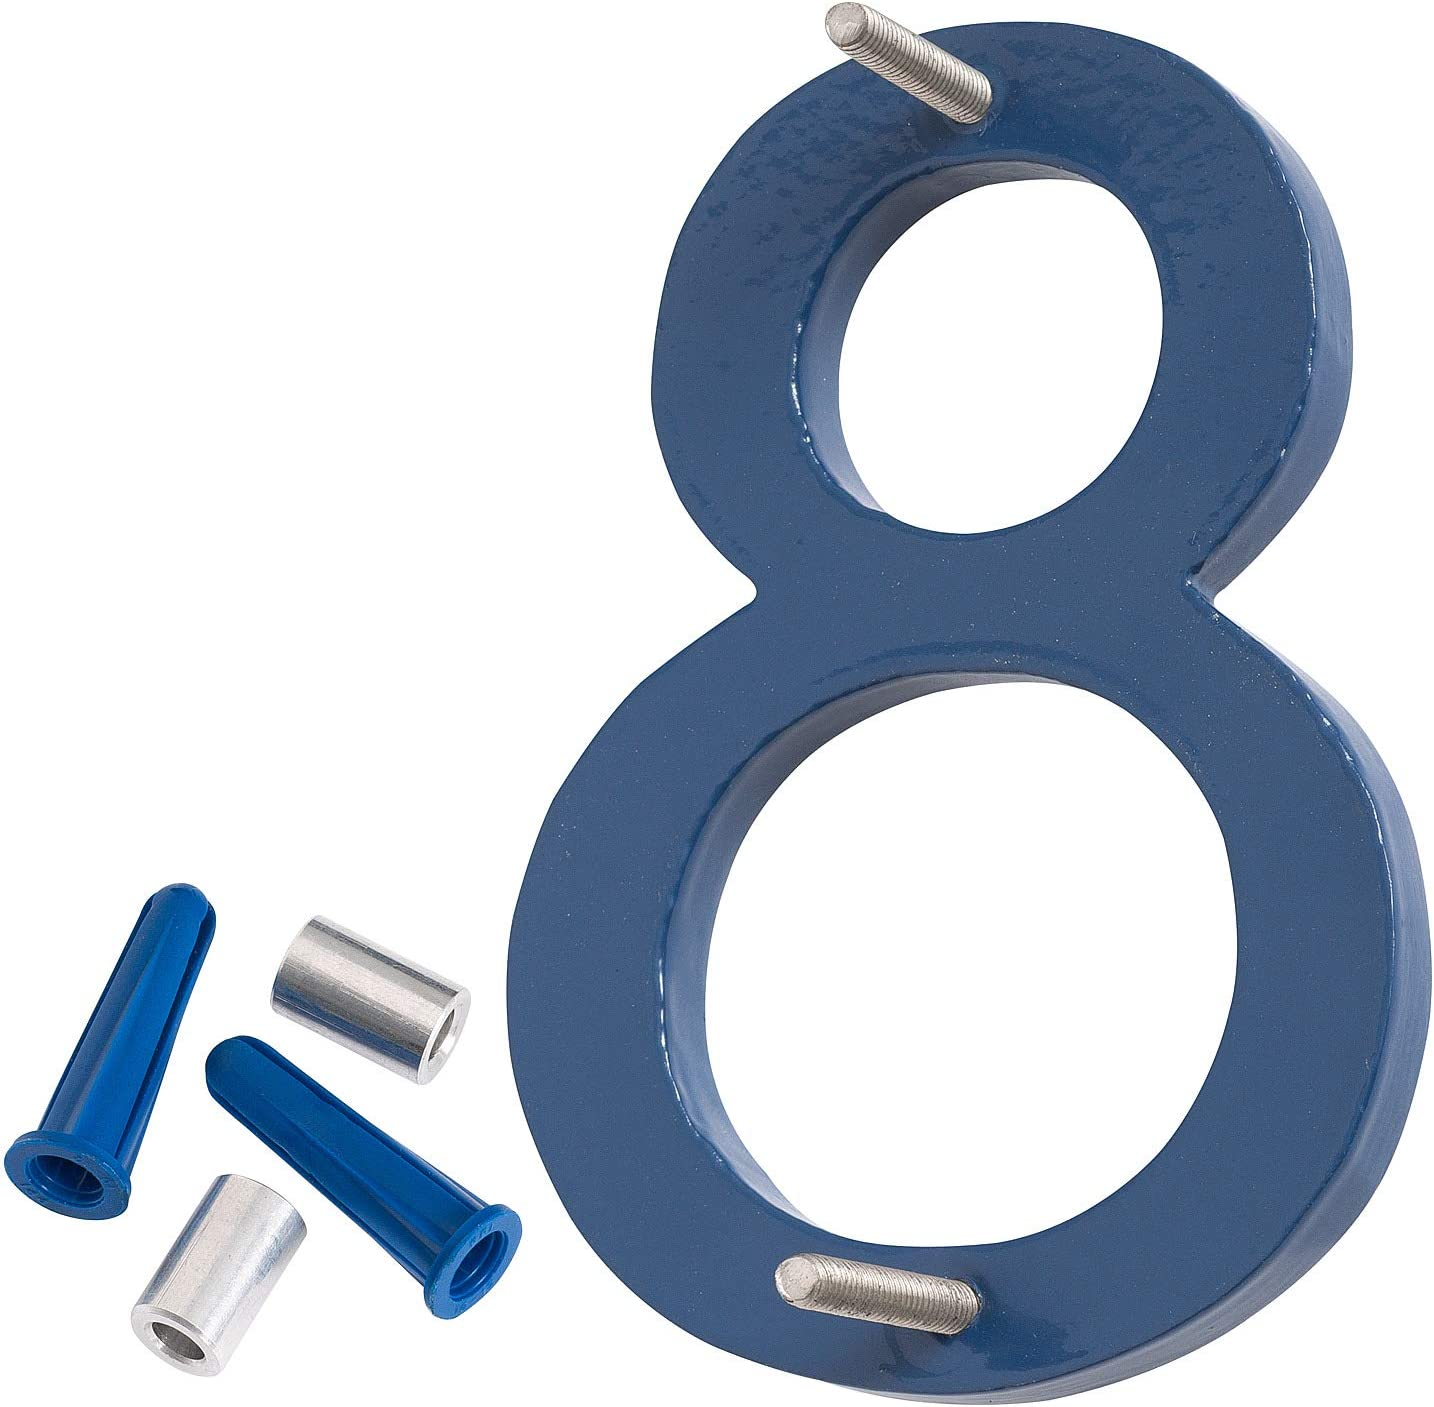 Montague Metal Products MHN-10-F-SB2-1 Solid Brushed Aluminum Modern Floating Address House Numbers Satin Nickel Powder Coated Sea Blue Two-Tone 10